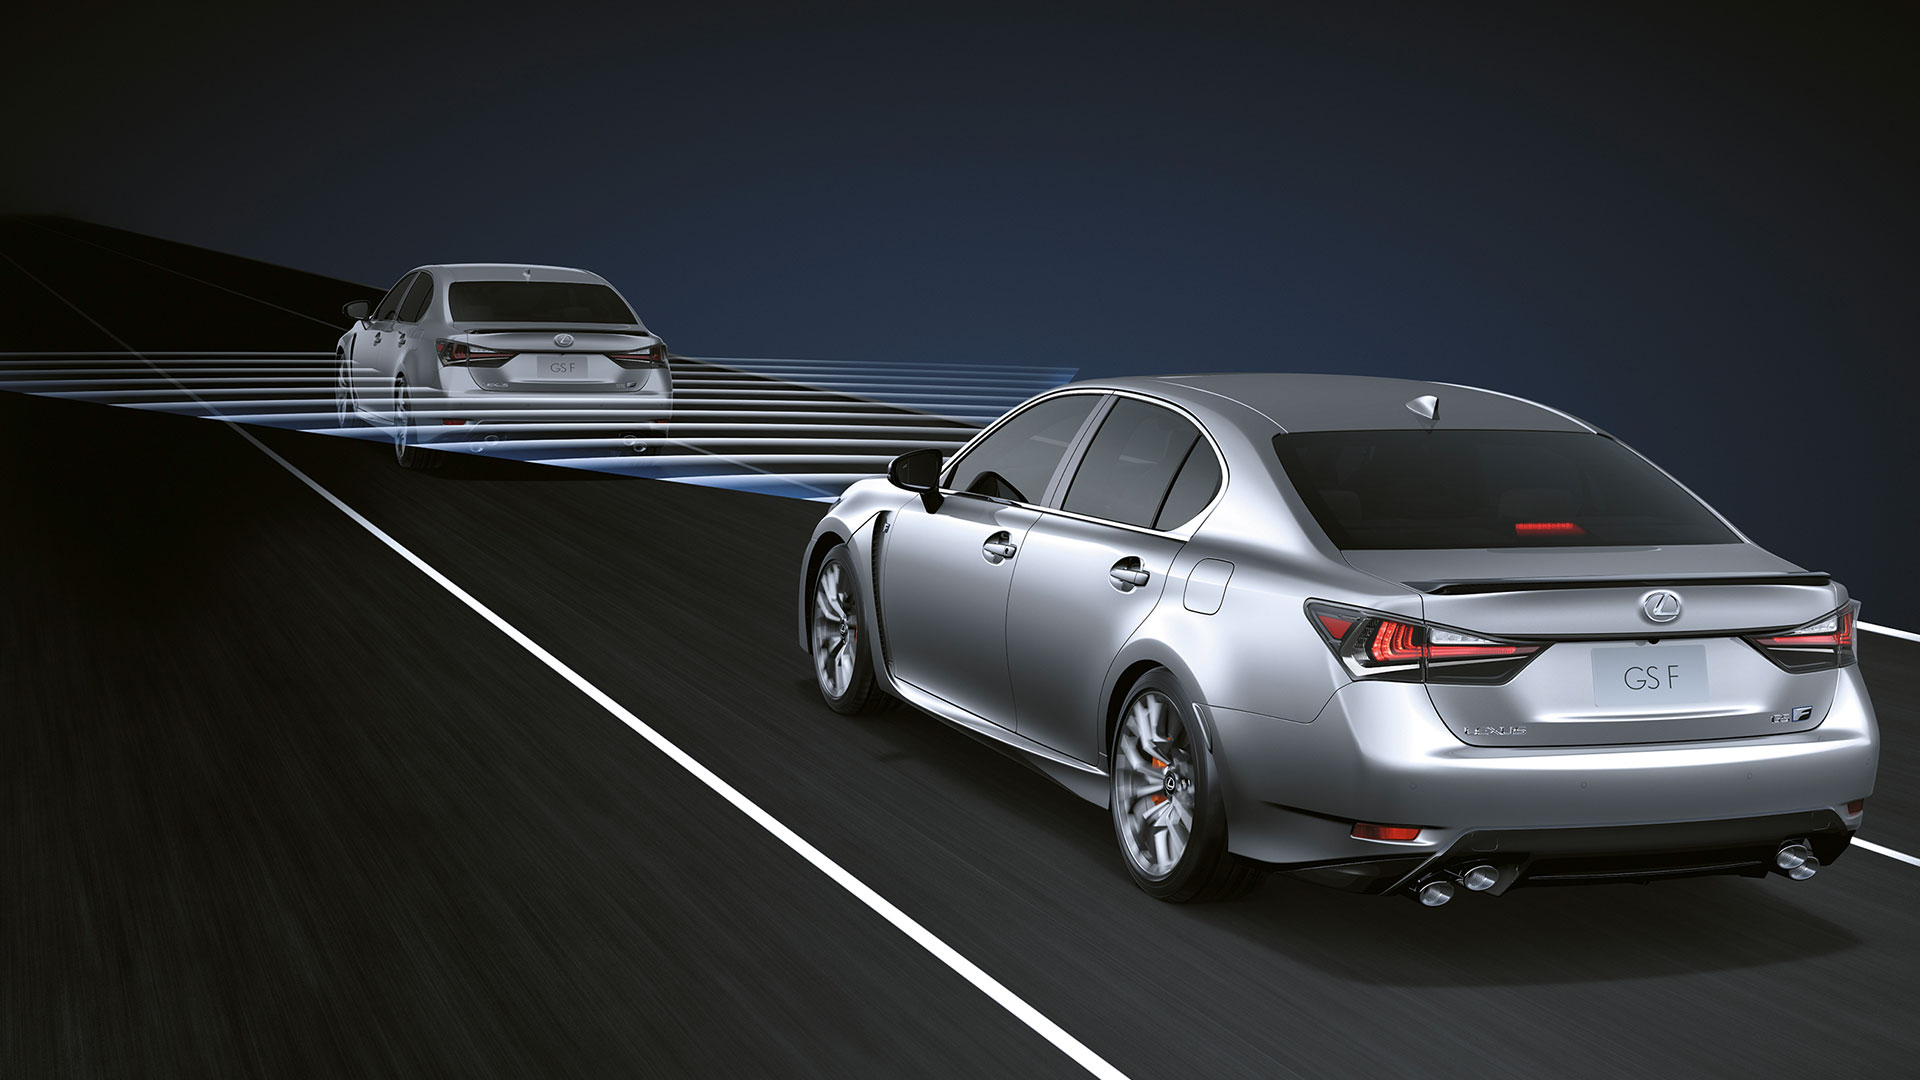 2017 lexus gs f features adaptive cruise control